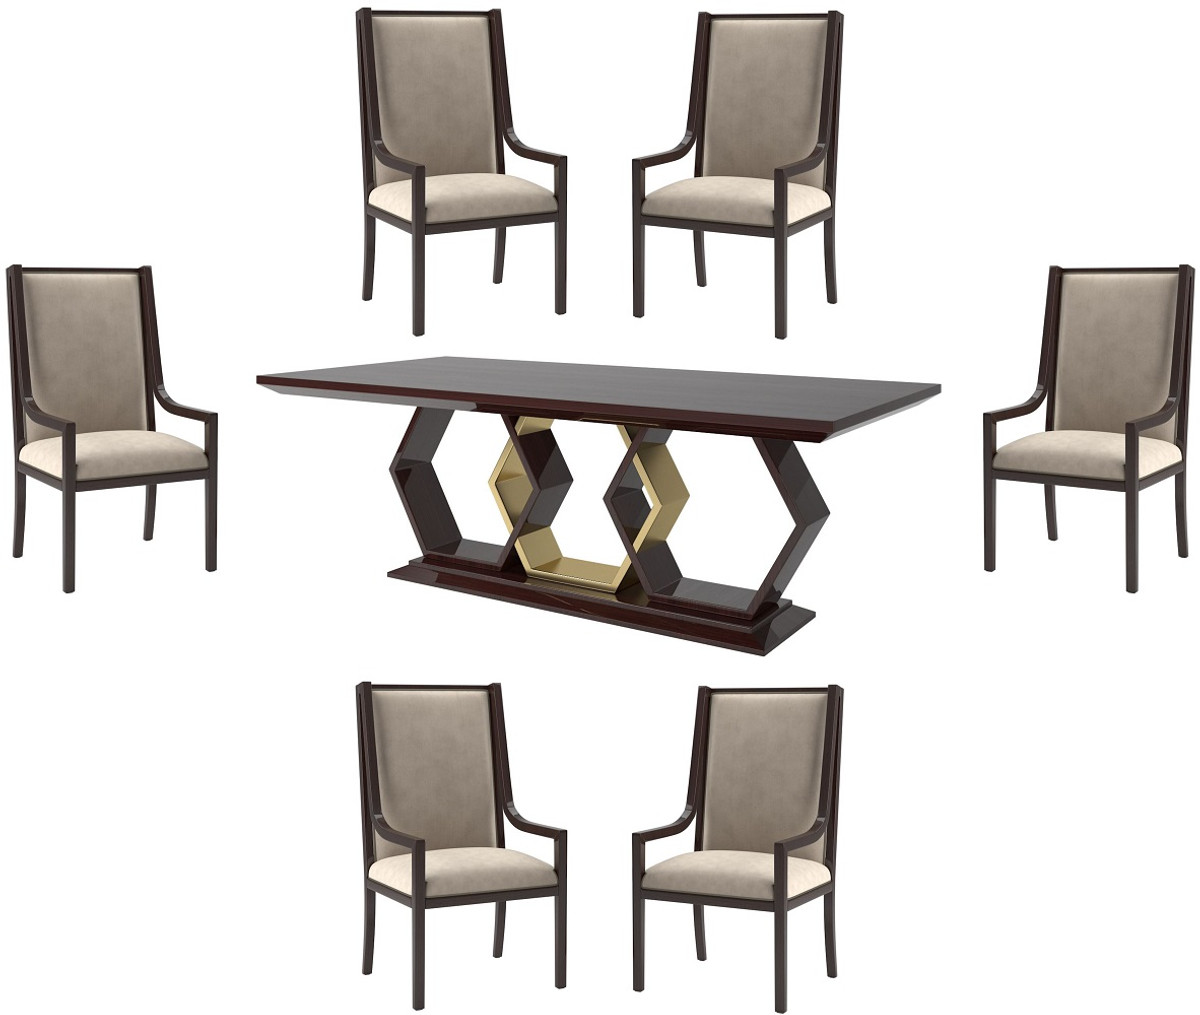 Casa Padrino Luxury Art Deco Dining Room Set Beige / Dark Brown High Gloss  / Gold   9 Dining Room Table & 9 Dining Chairs   Art Deco Dining Furniture  ...